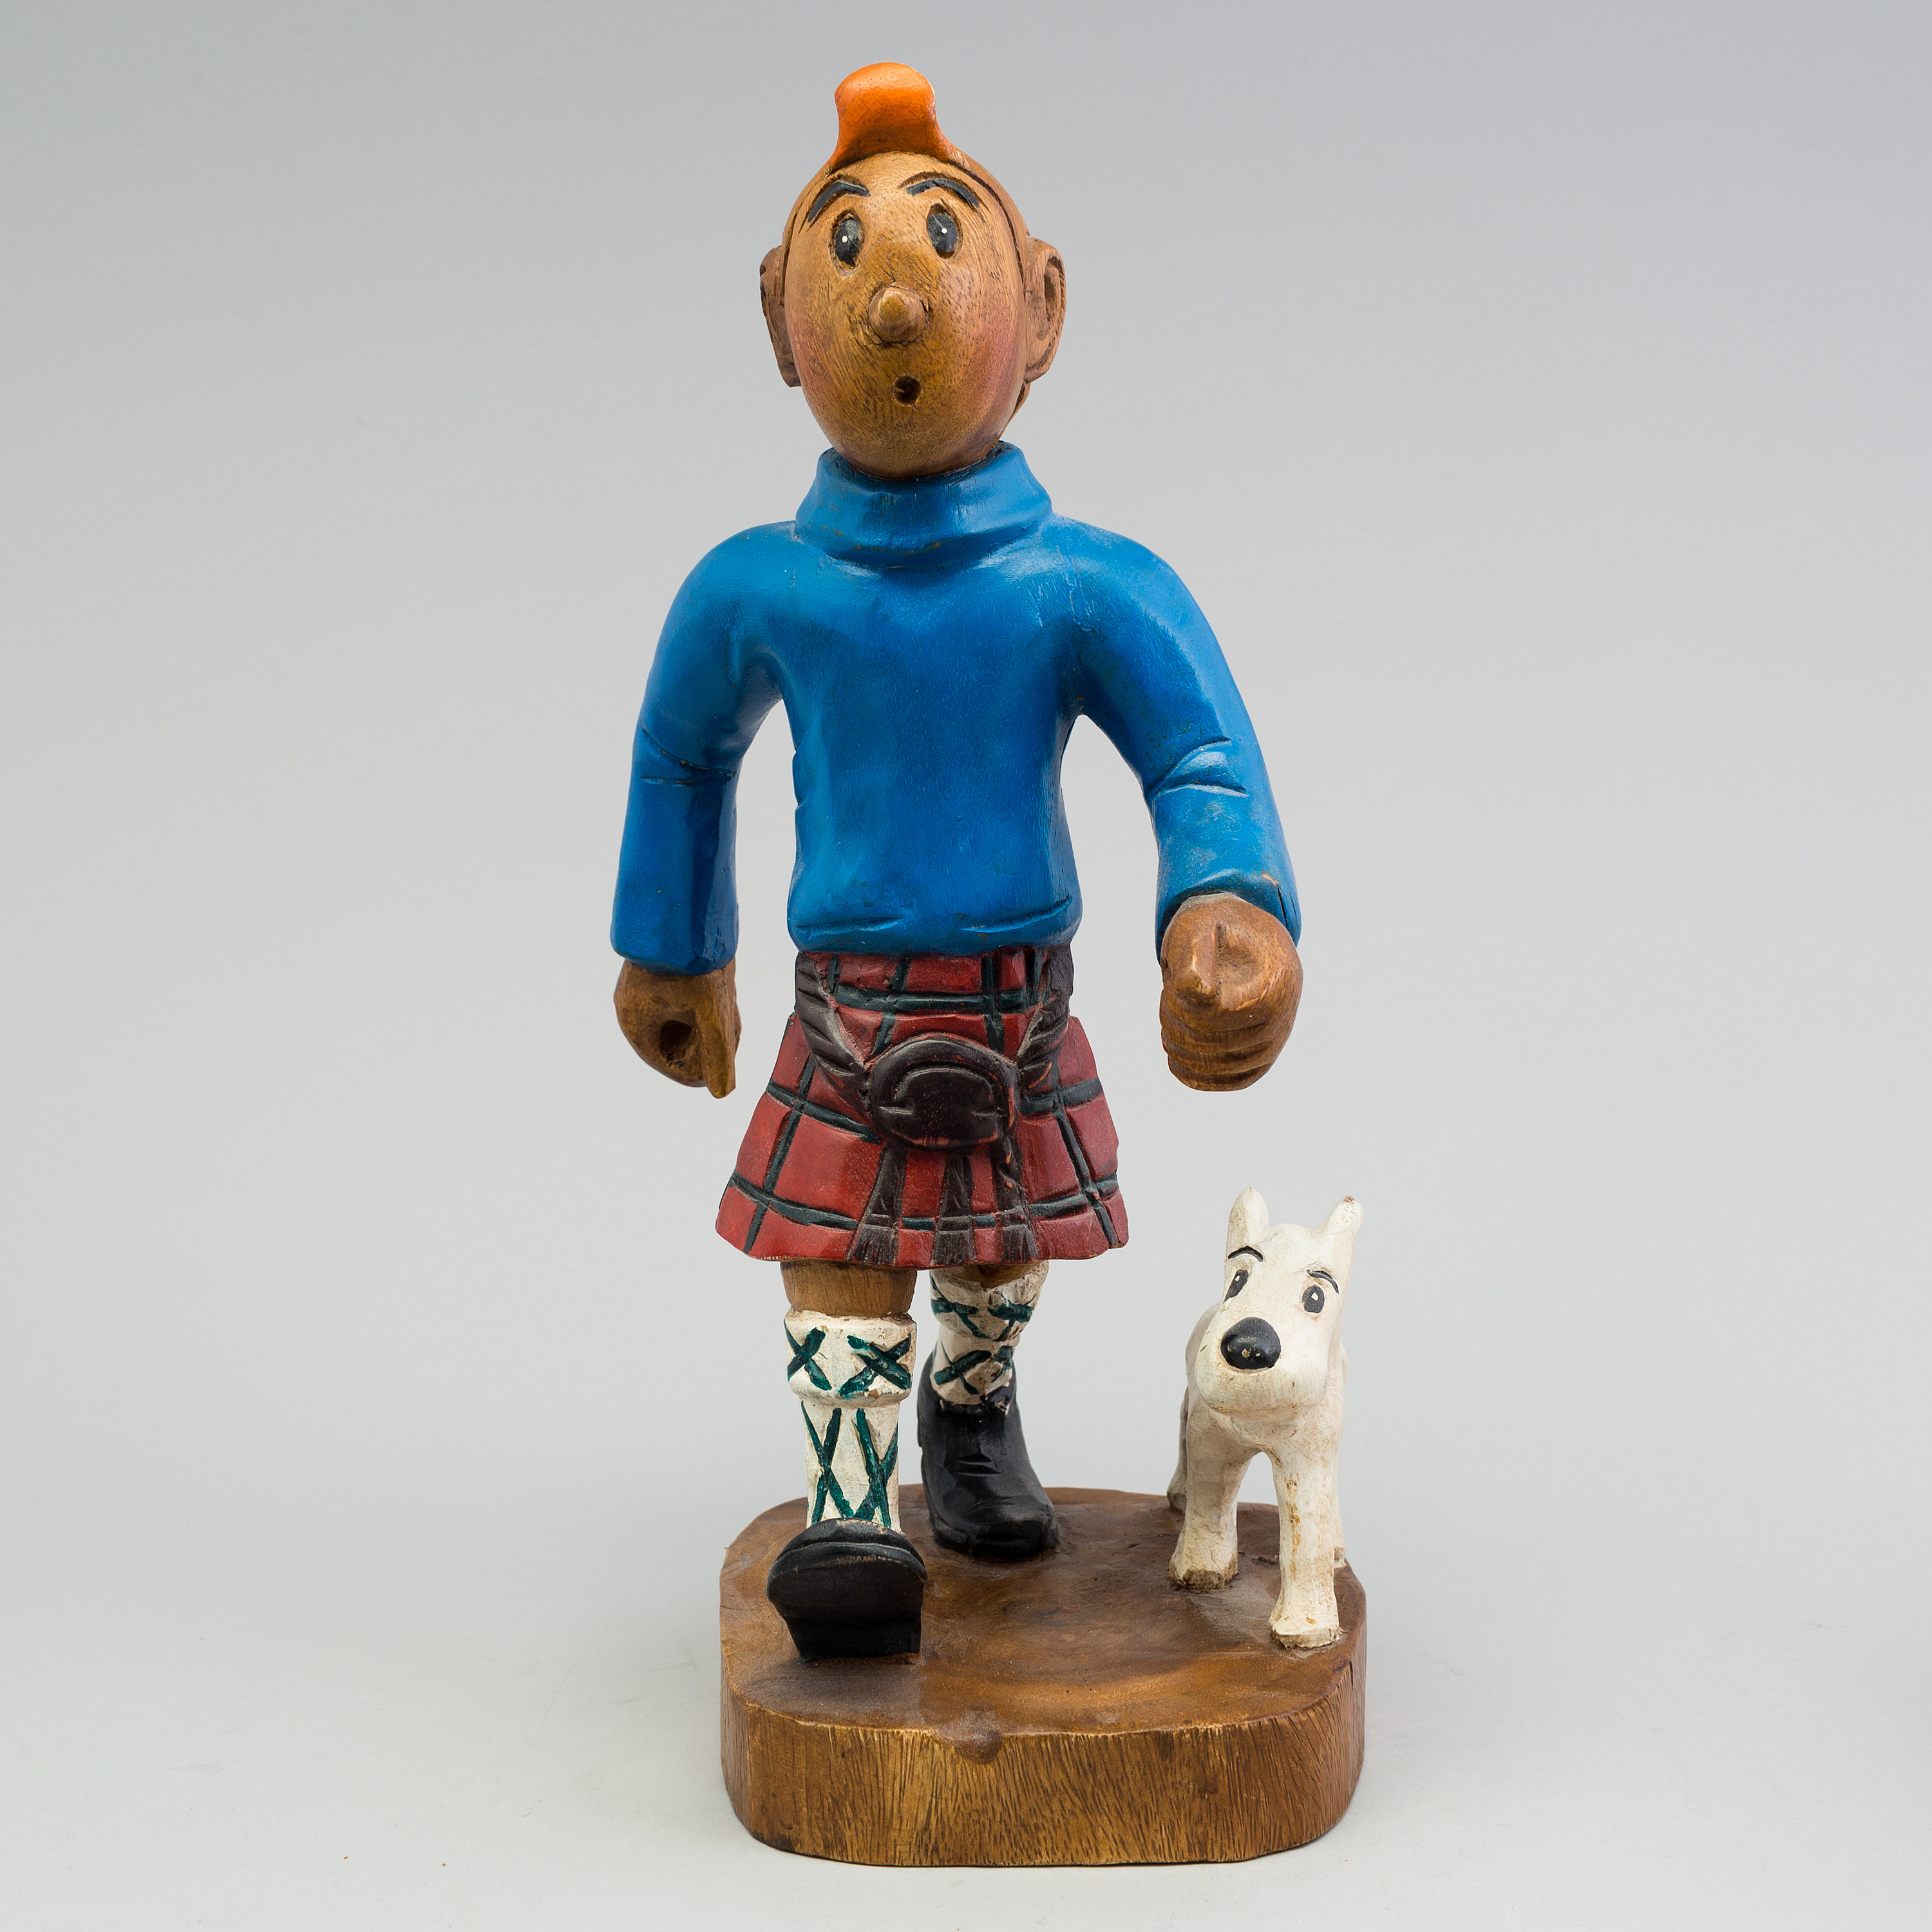 A Tintin And Snowy Wood Scuplture From The Second Half Of The 20th